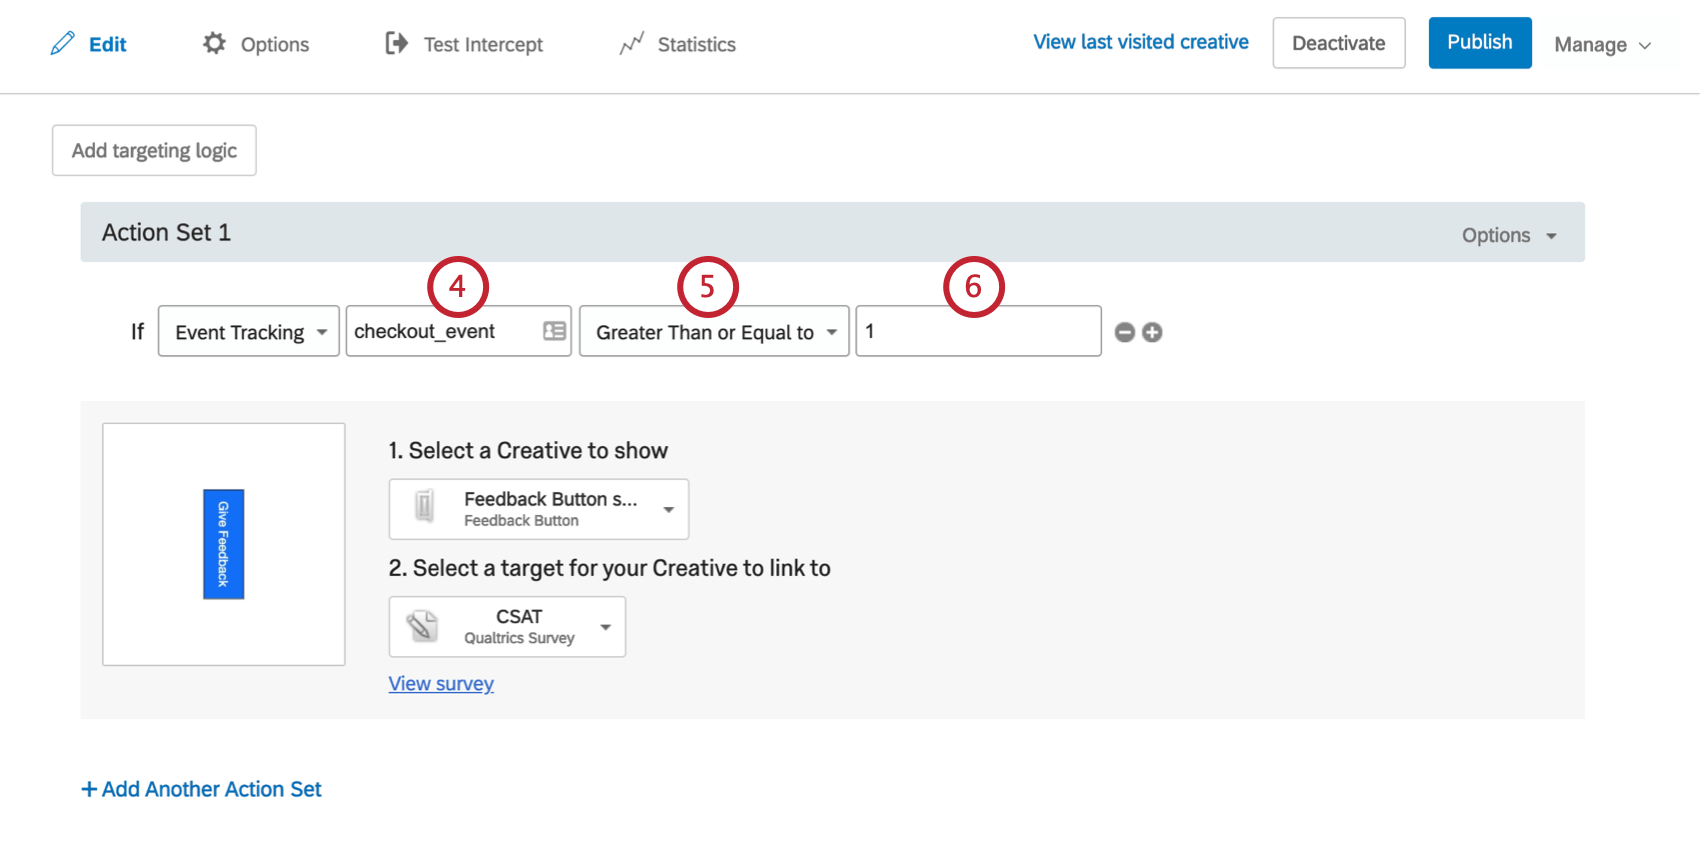 The condition says the Creative will appear if Event Tracking checkout event is greater than or equal to 1